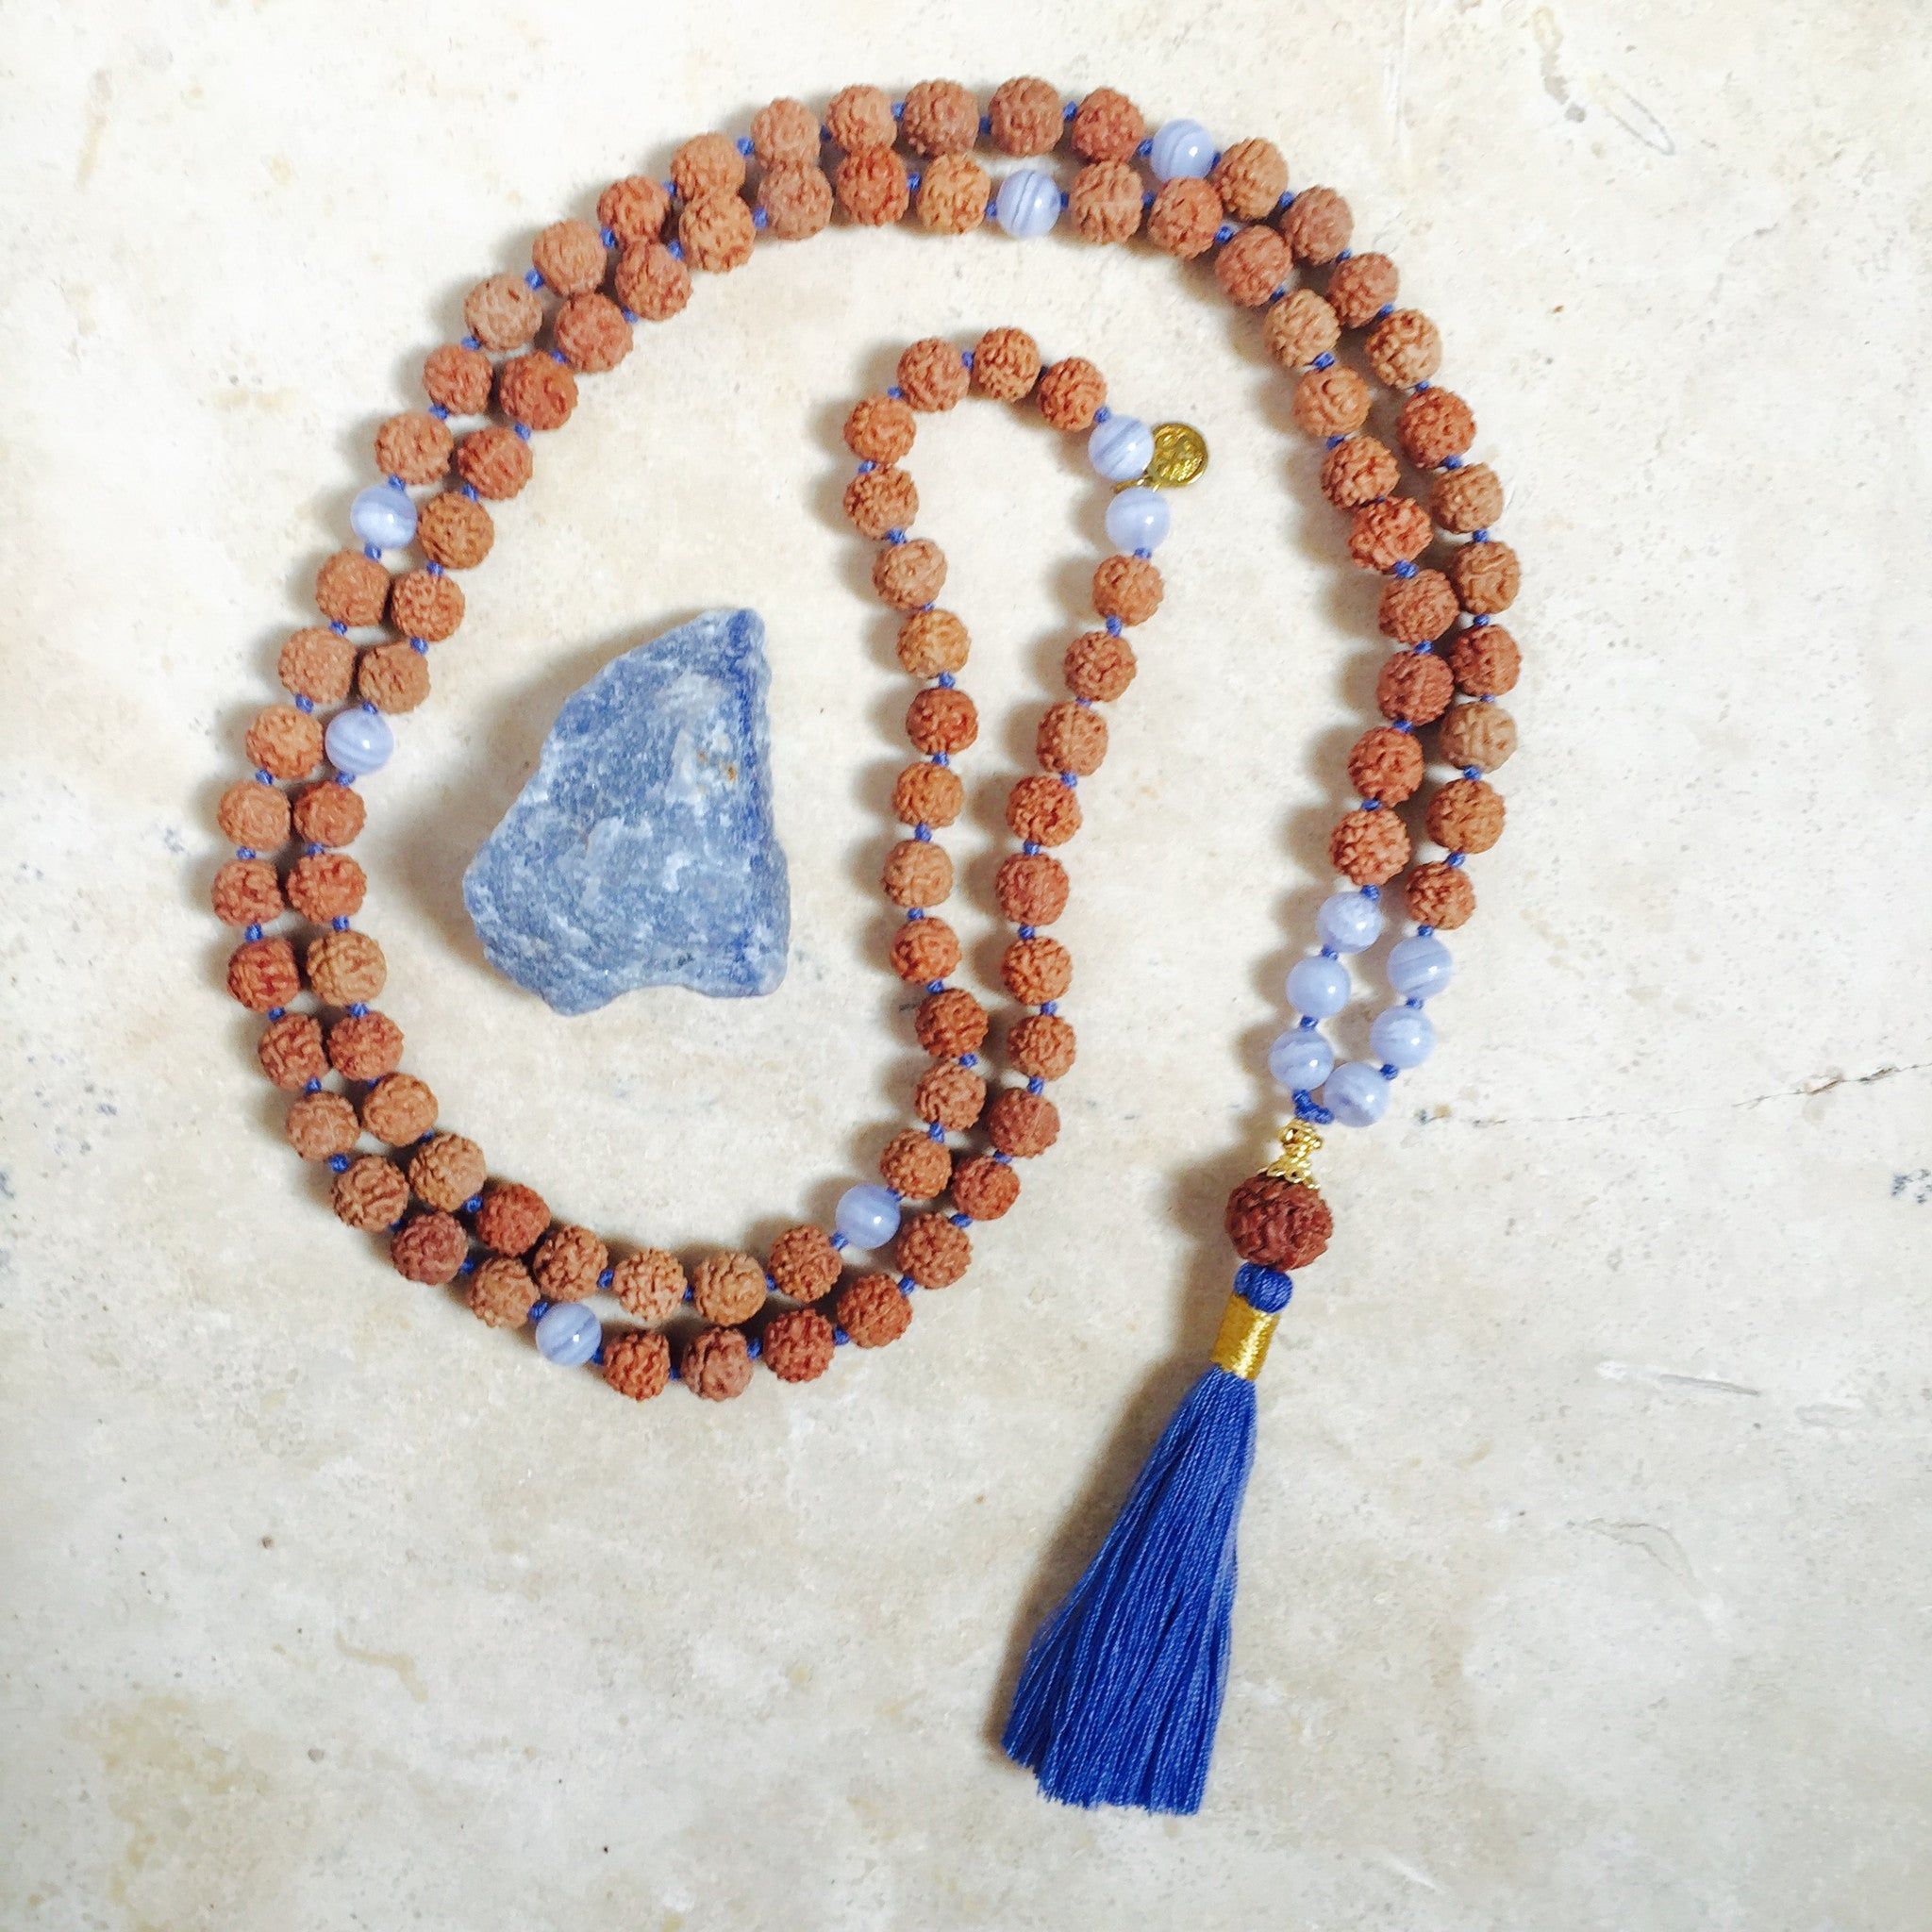 necklace grounding wrap or mala copy necklaces bracelet bead male products jasper beads red of